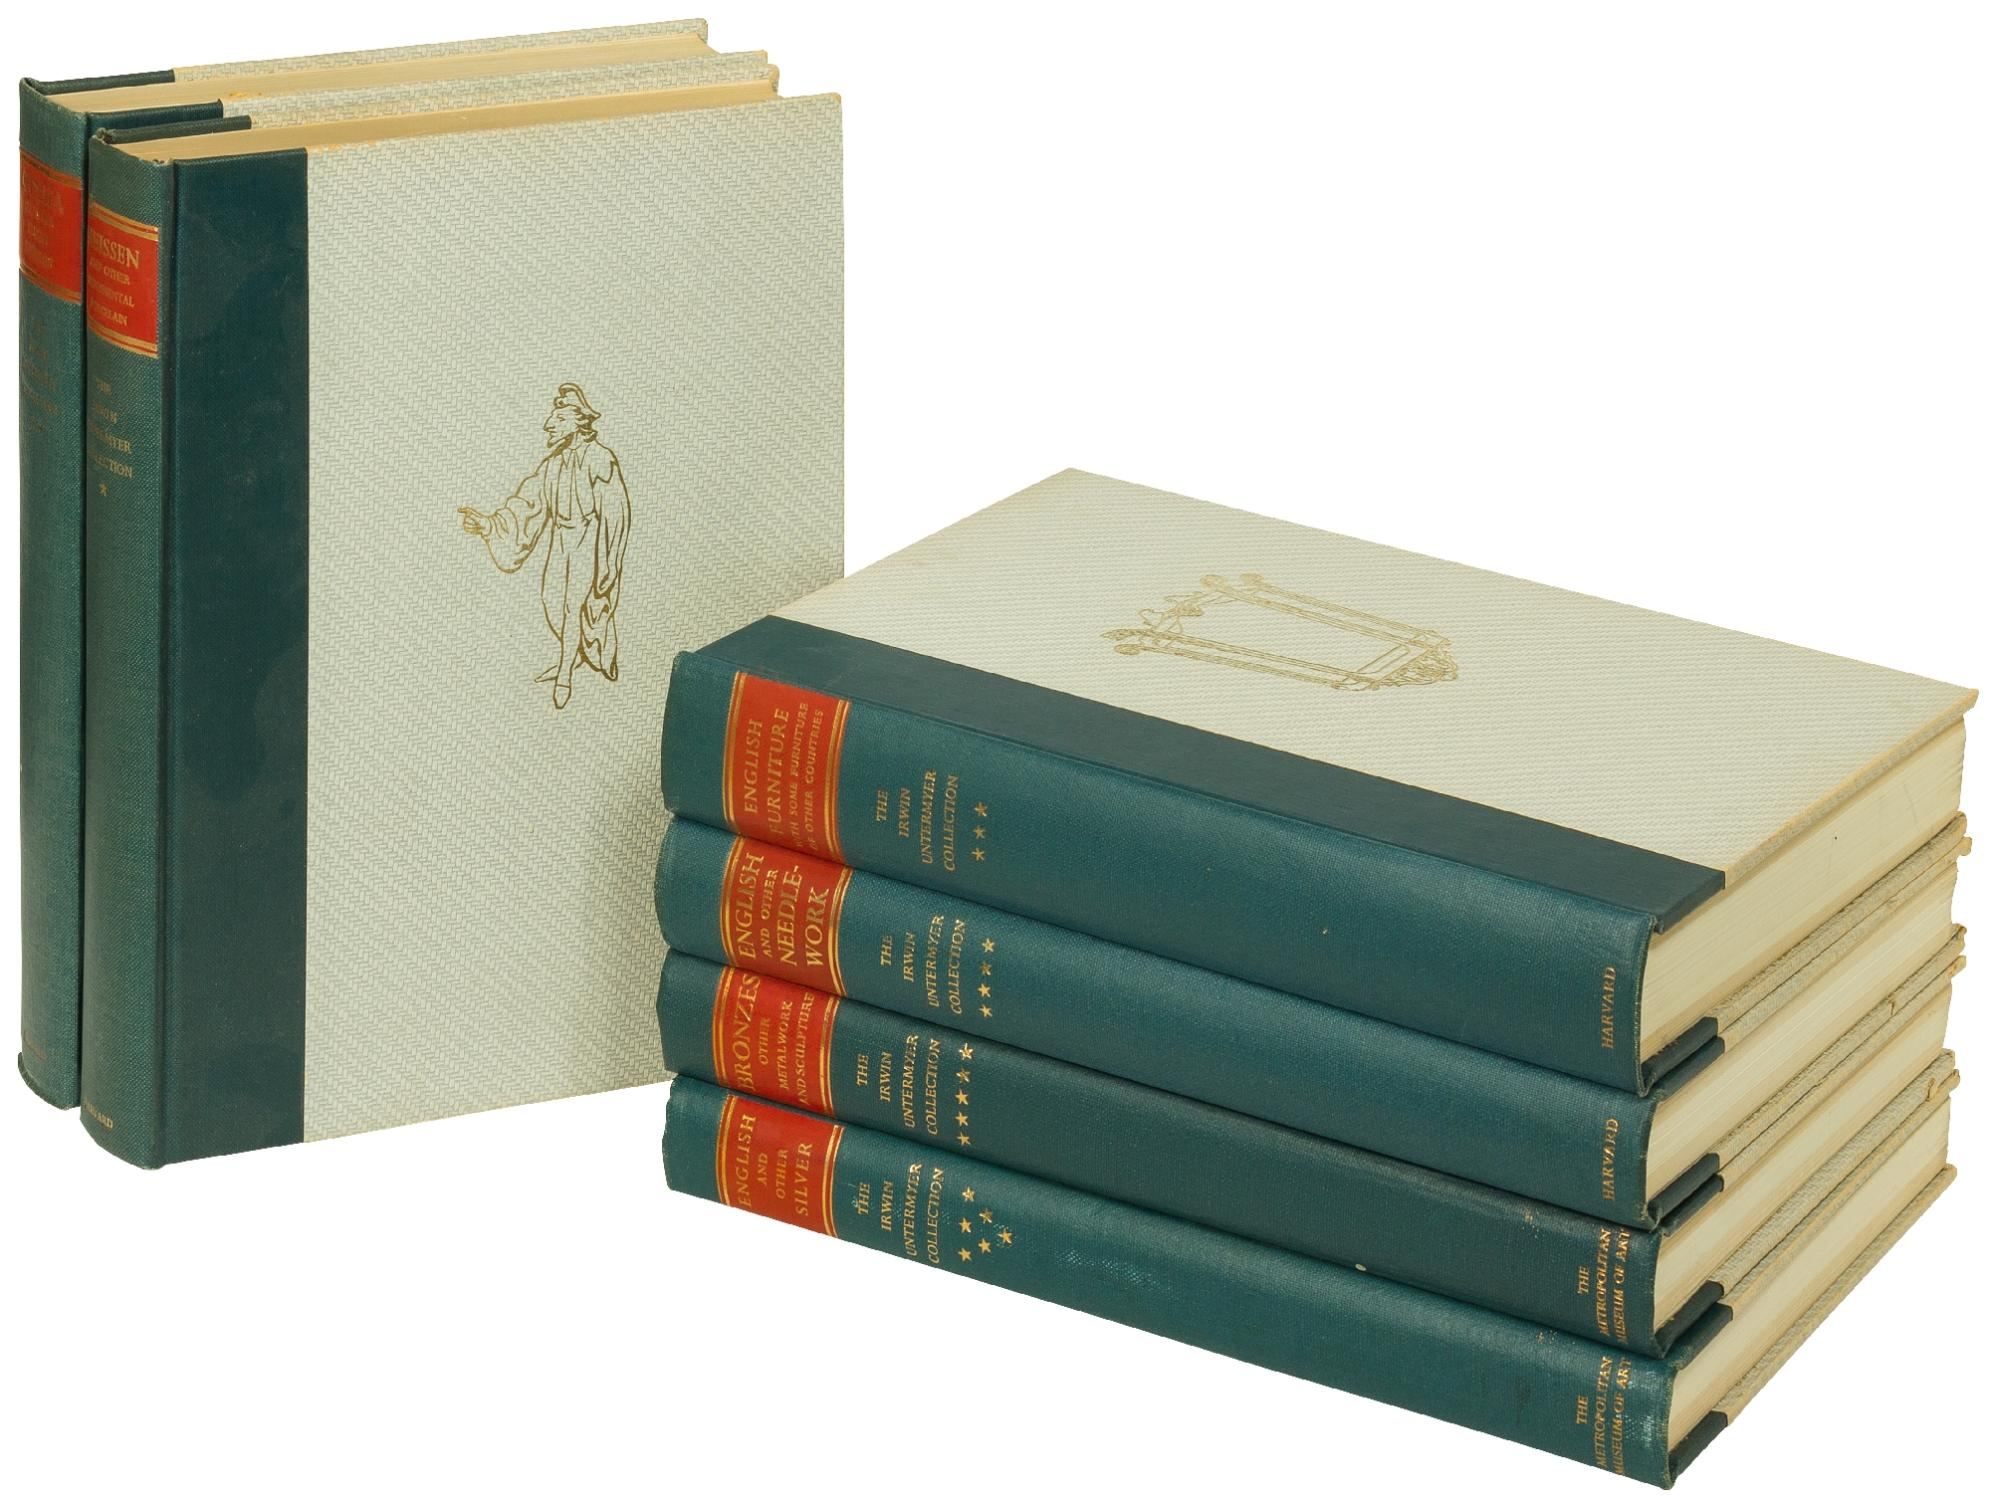 The Irwin UnterMYER COLLECTION [IN SIX VOLUMES]